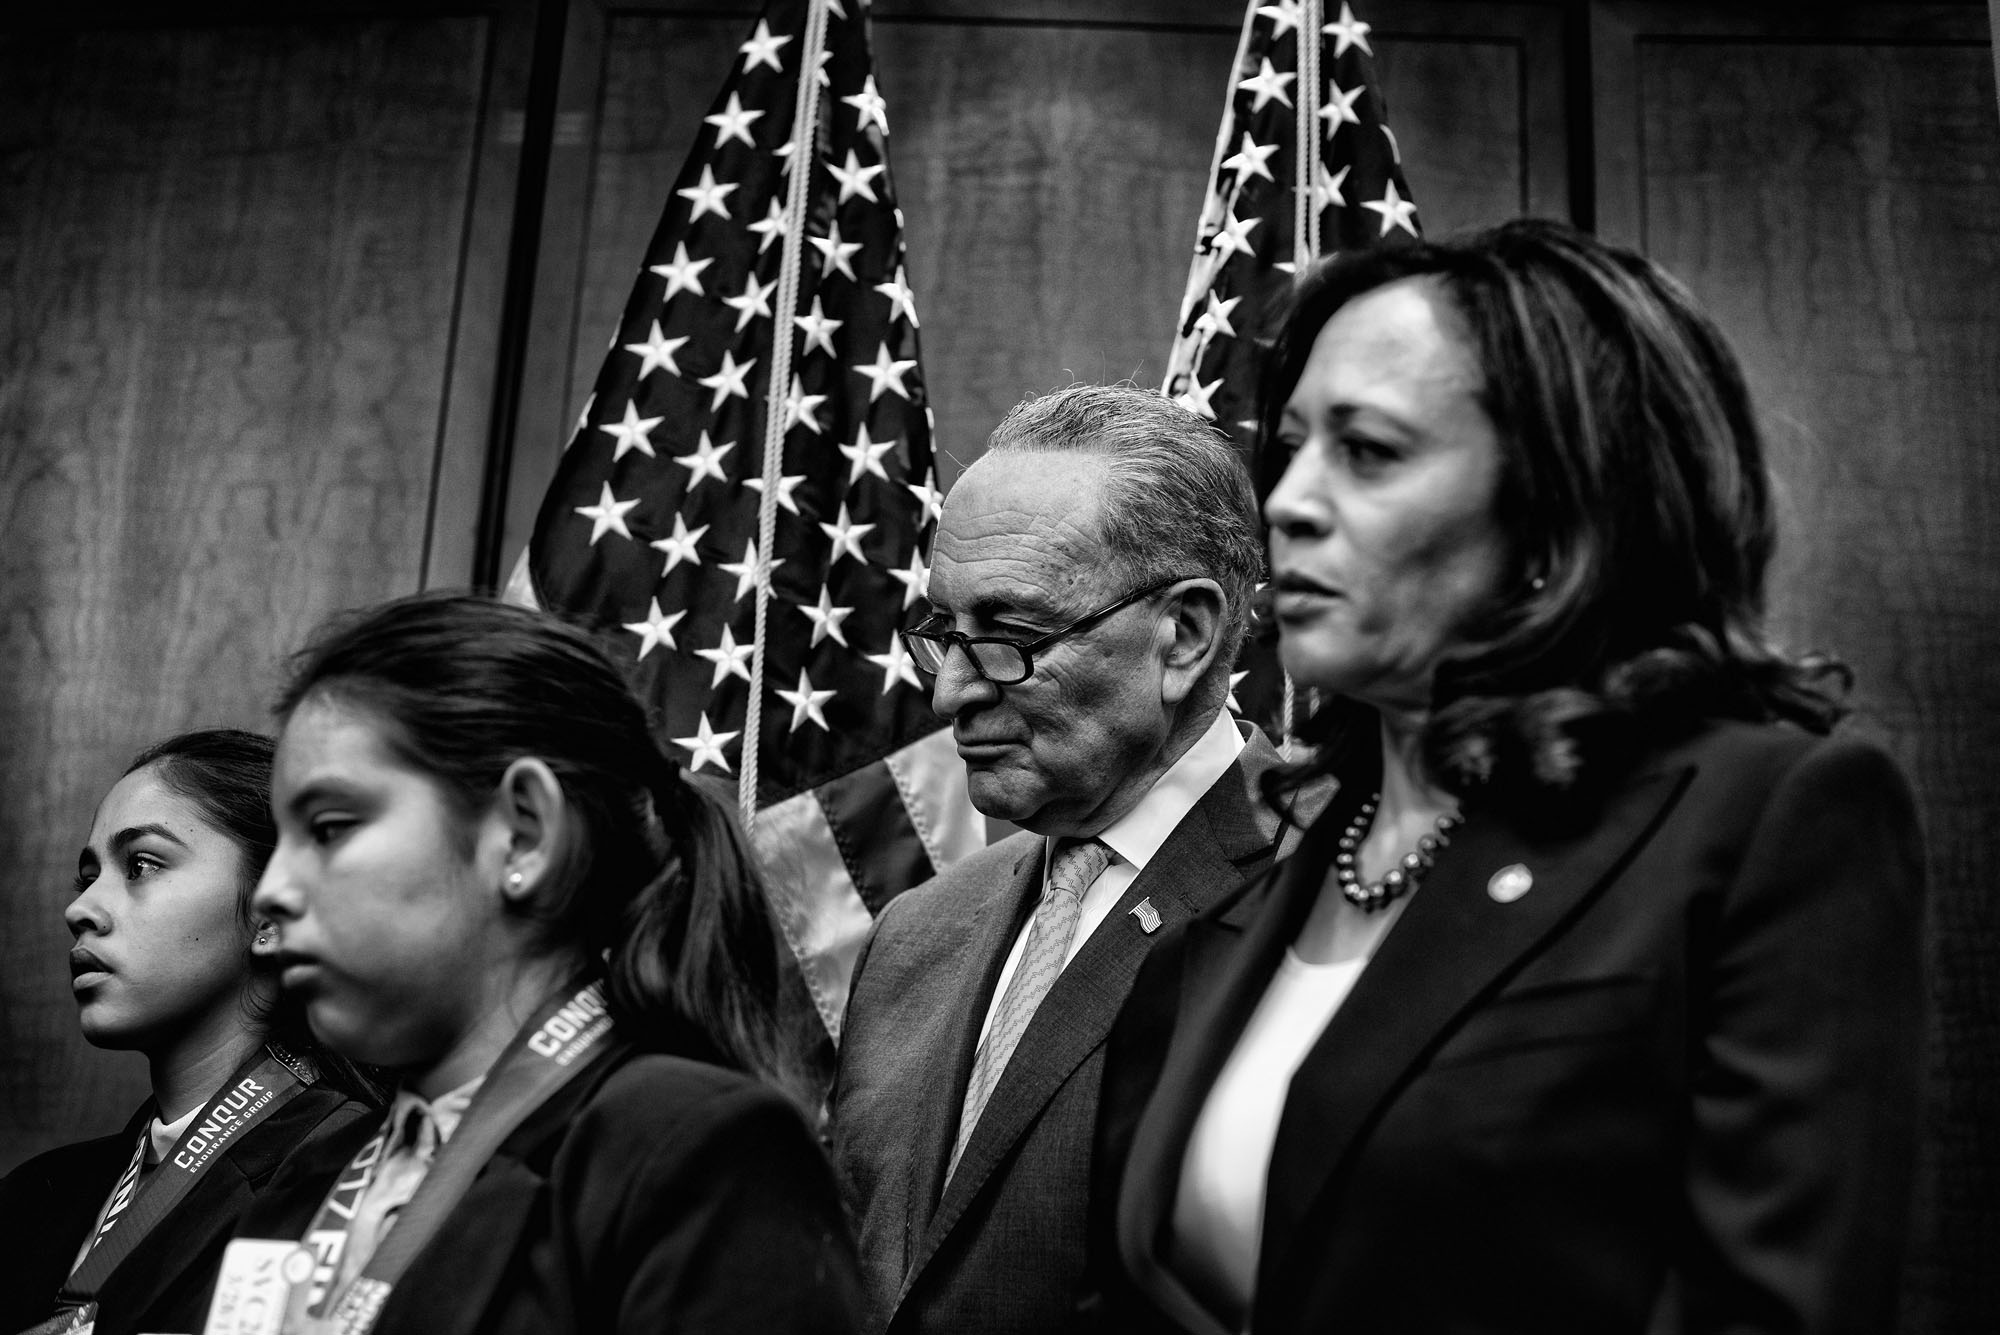 Senator Chuck Schumer listens to speakers during a news conference organized by La Raza highlighted the deportation of illegal immigrants and its effects on families.